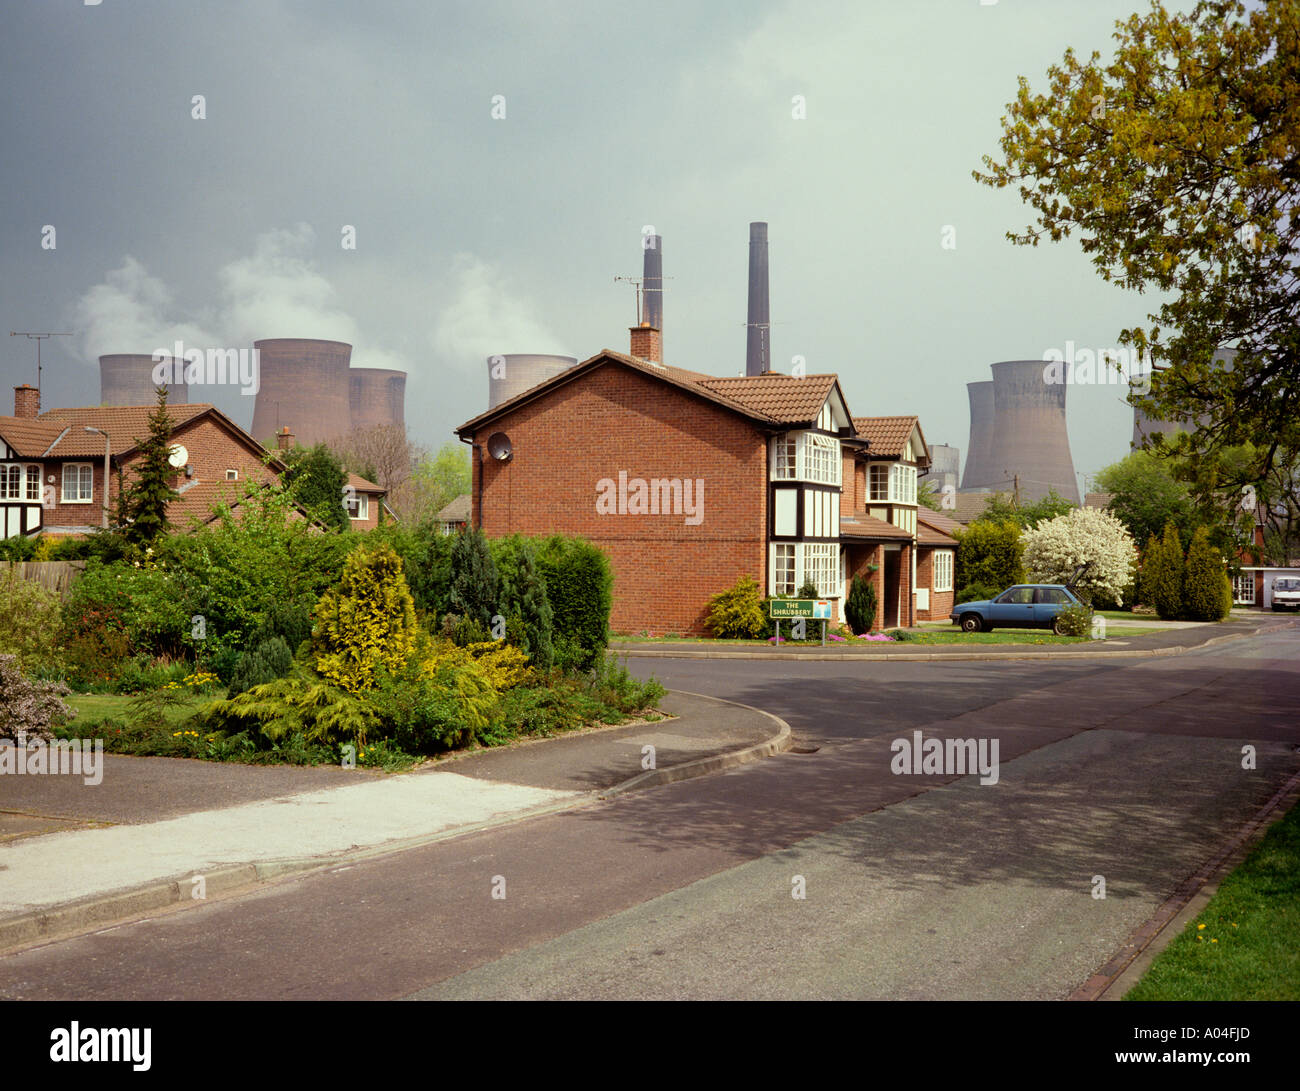 Environment houses in shadow of power station - Stock Image